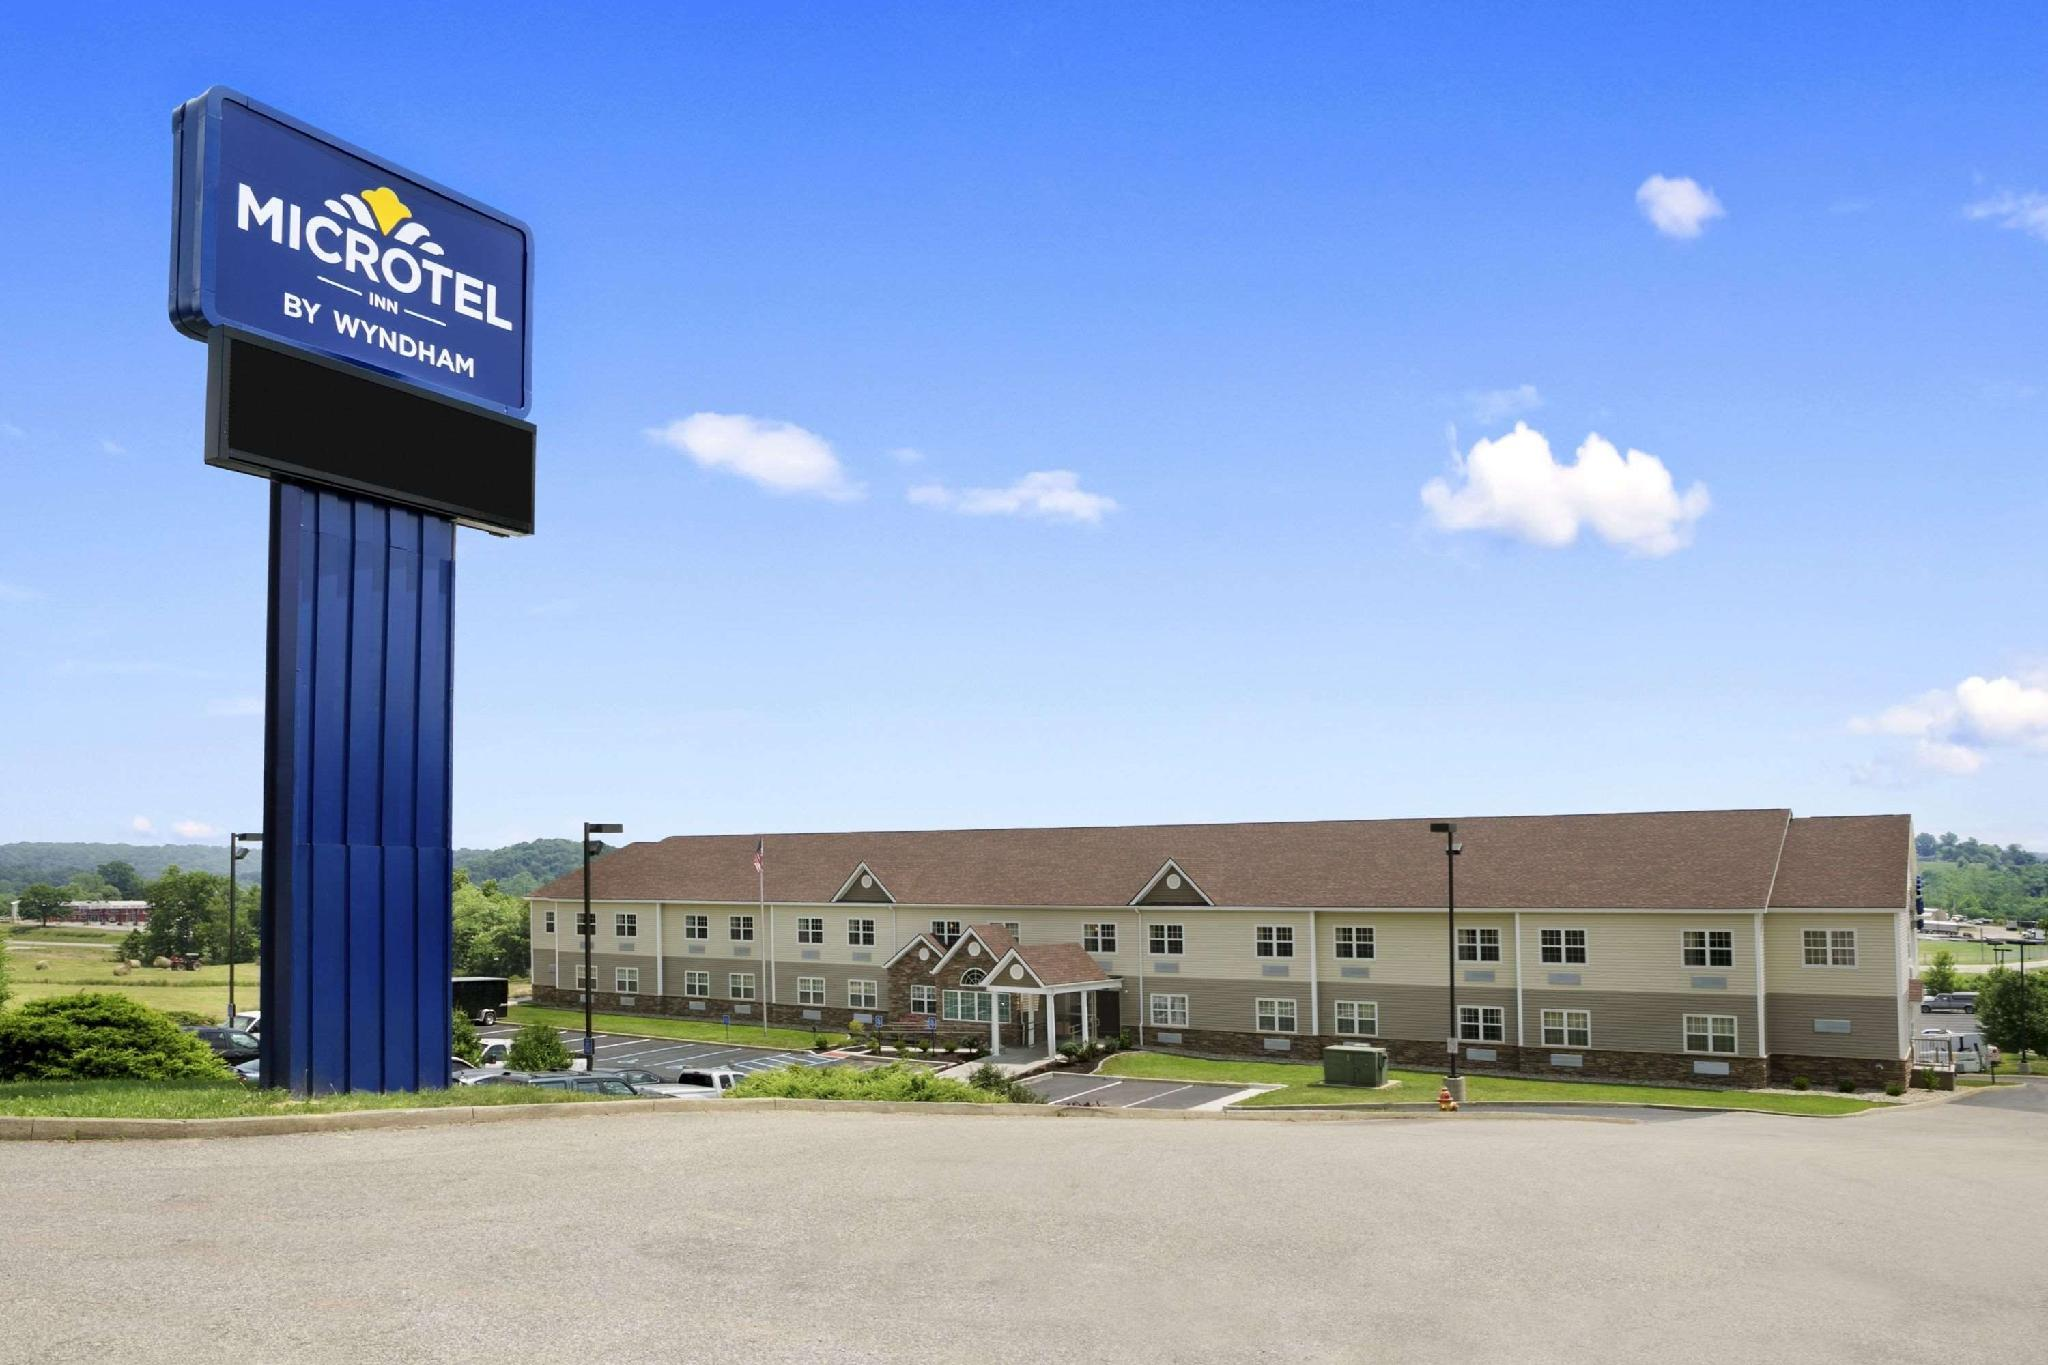 Microtel Inn And Suites By Wyndham Mineral Wells Parkersburg